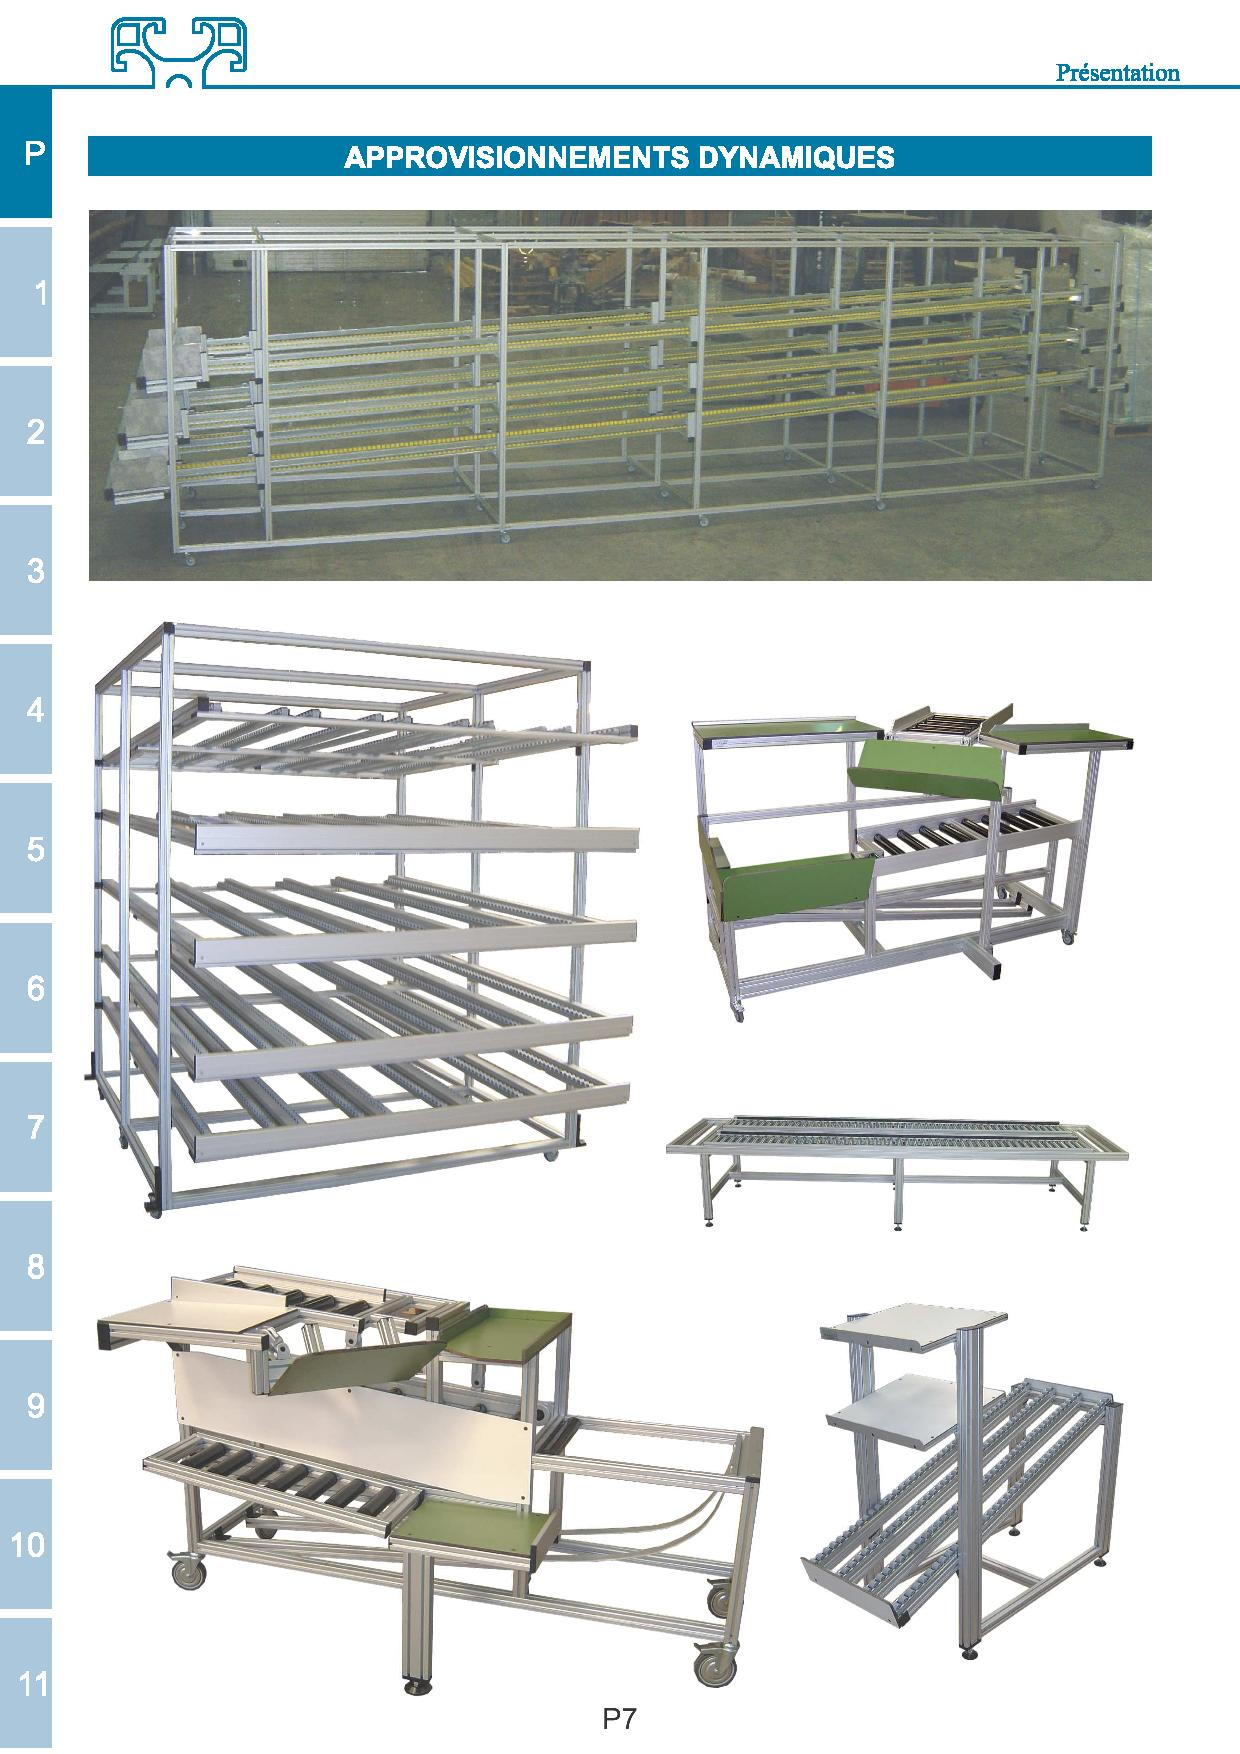 Aluminium machine guarding and working stations